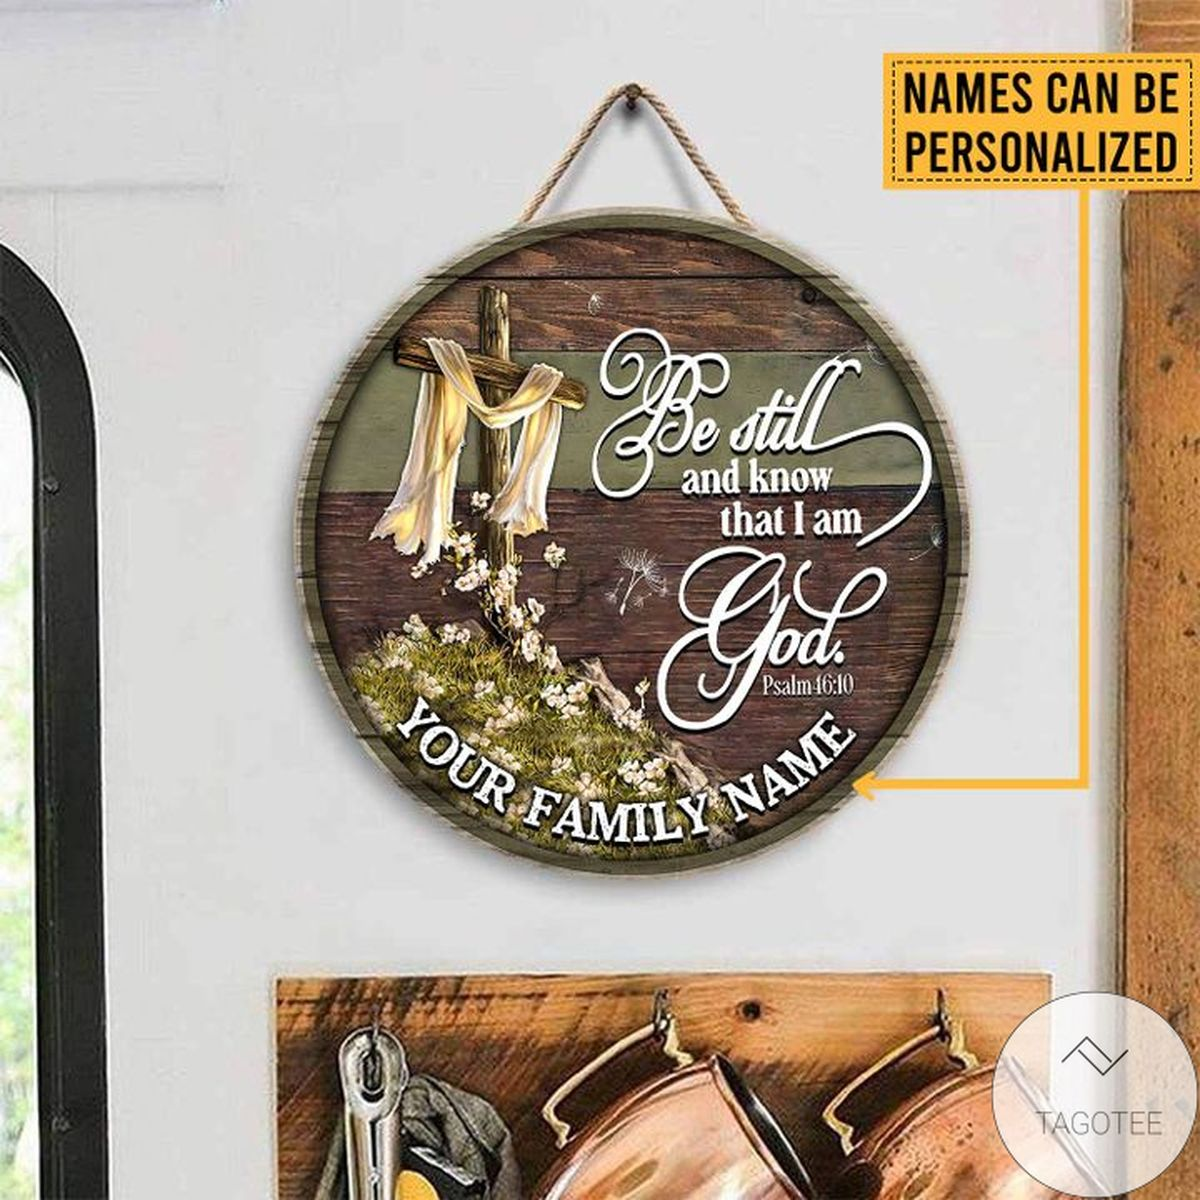 Print On Demand Personalized Be Still And Know That I Am God Wood Sign